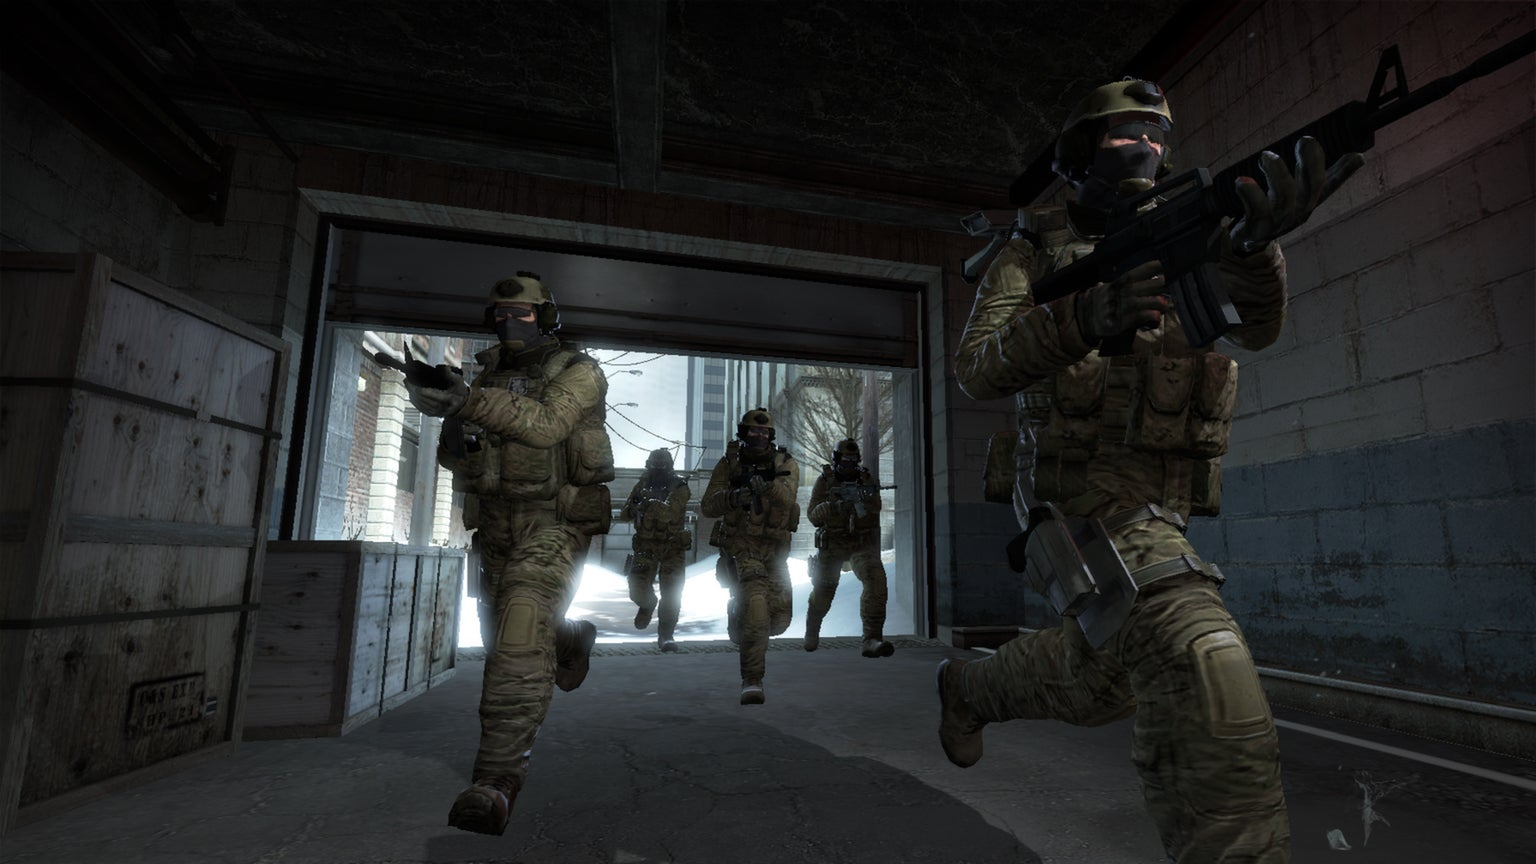 Splyce Is Leaving CompetitiveCounter-Strike To Focus On Other Games